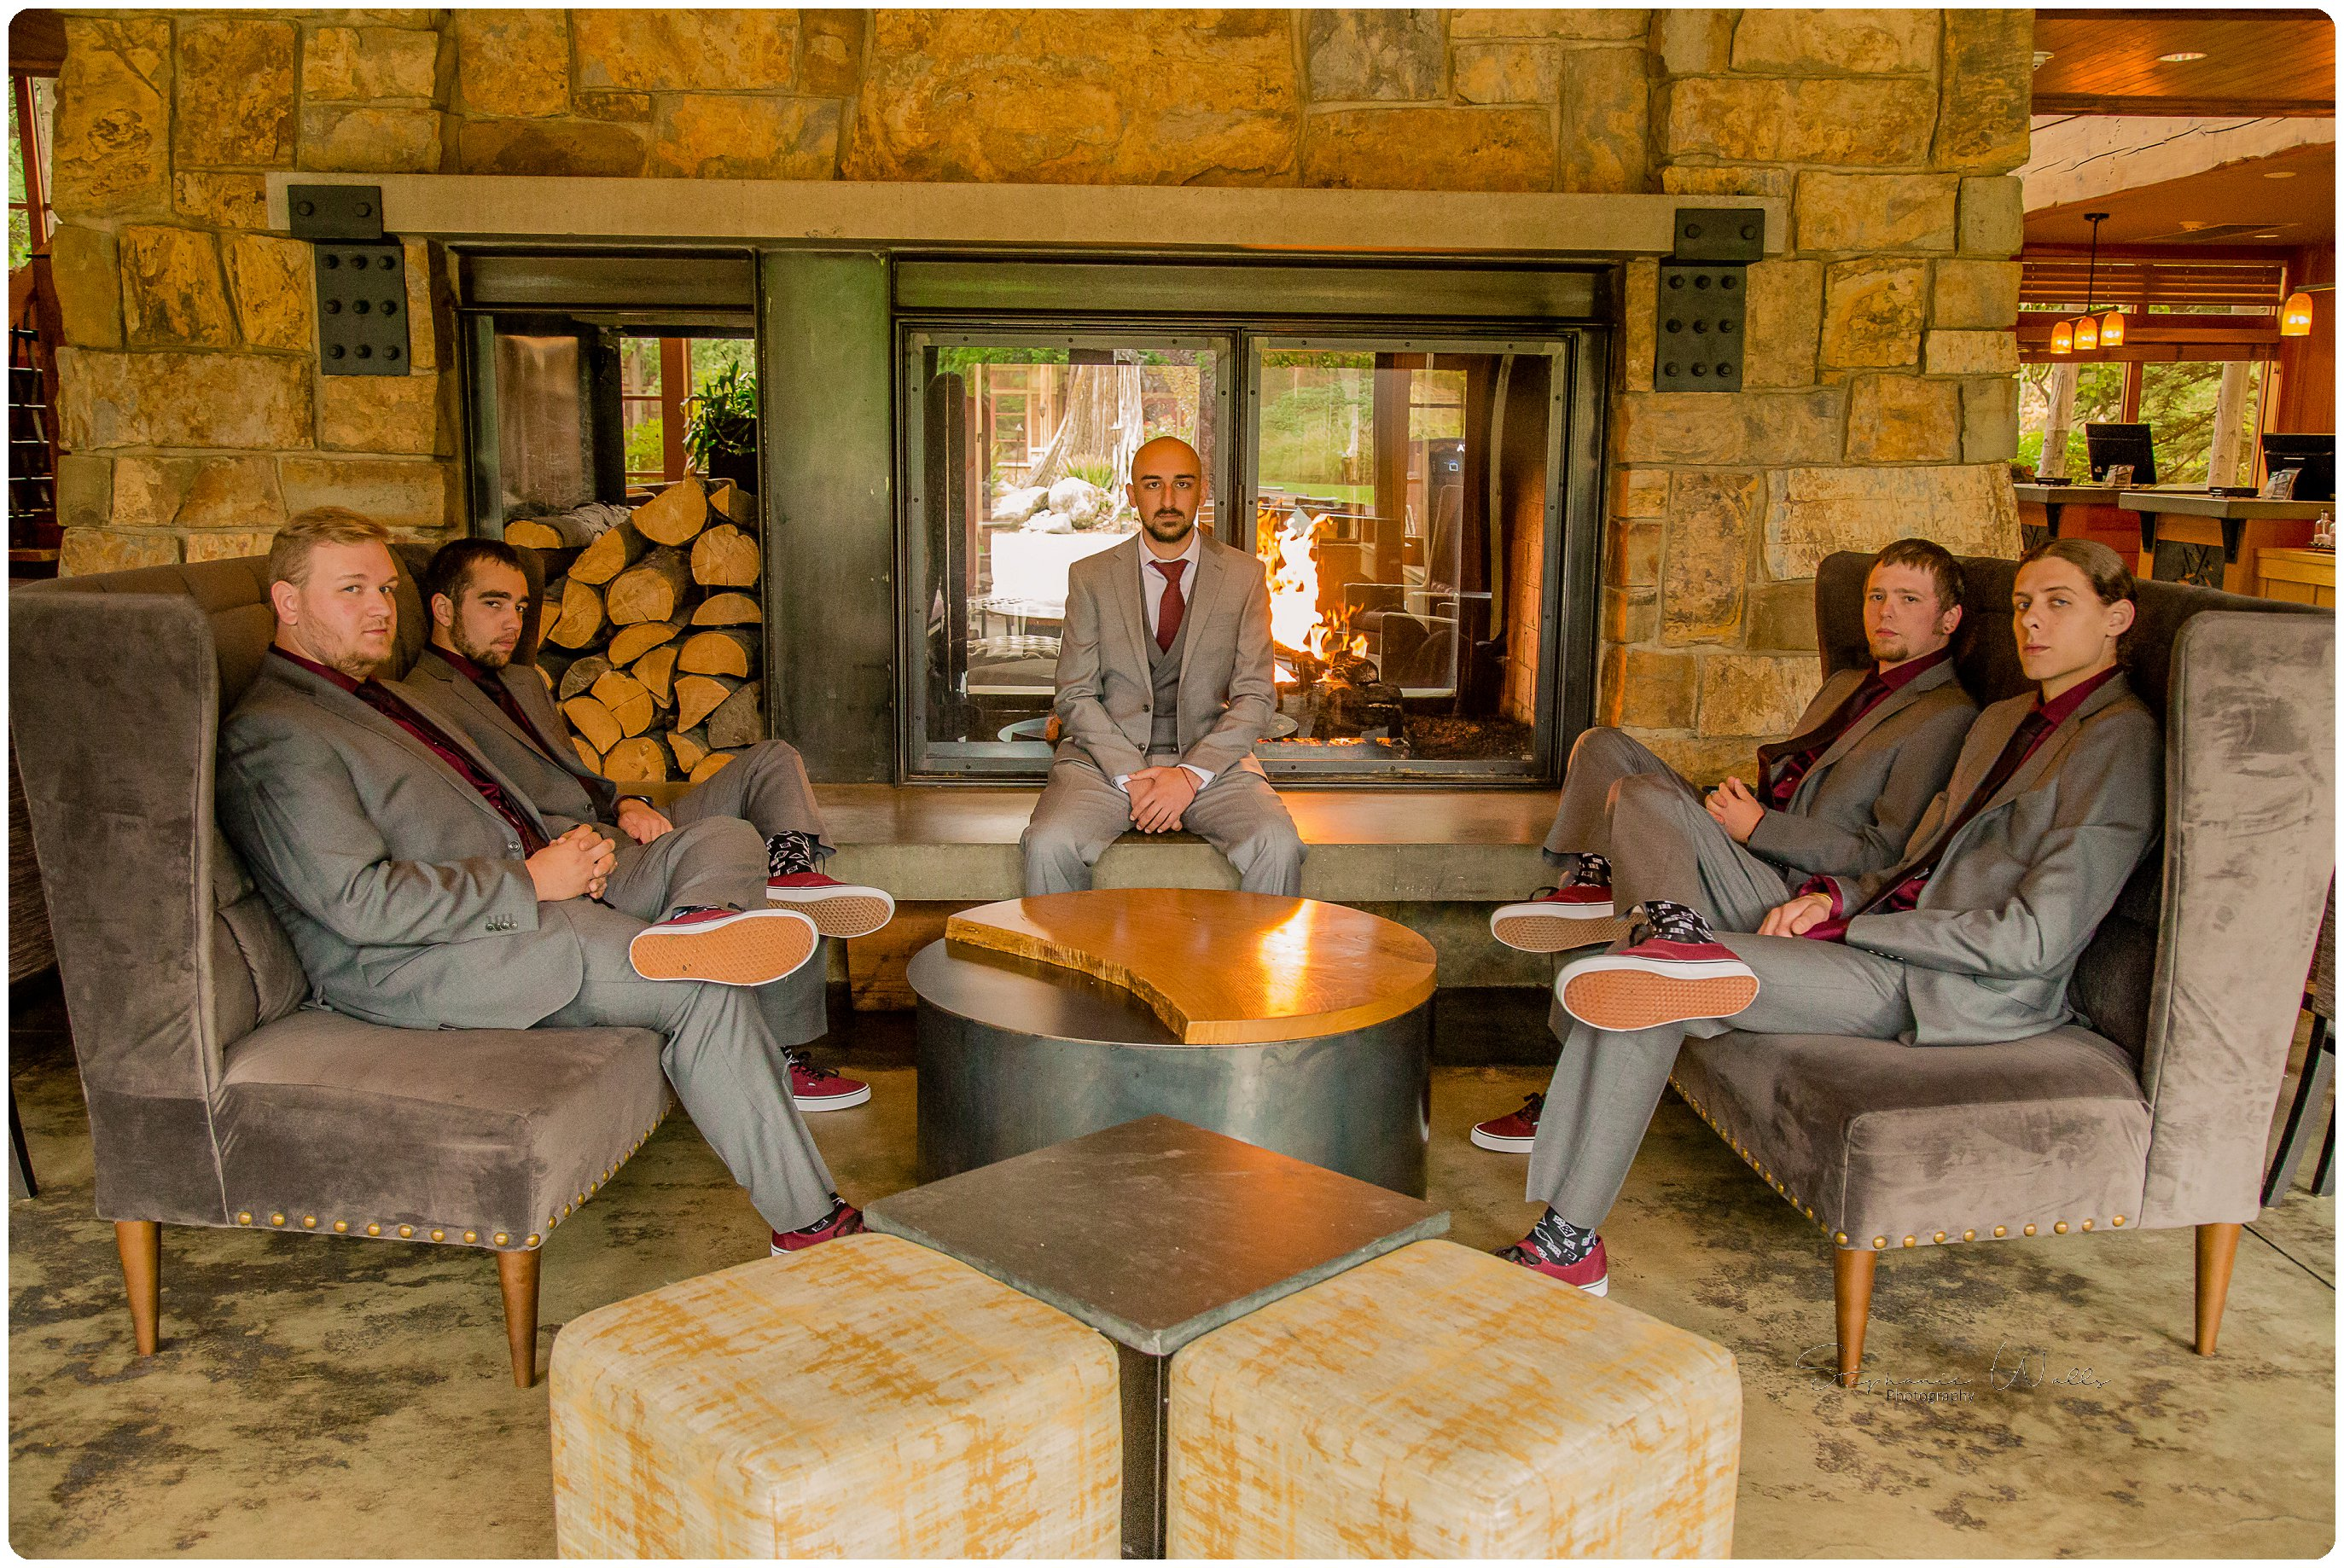 Groom Groomsmen 077 1 Megan & Mo's Day 2 | Willow Lodge Wedding | Woodinville, Wa Wedding Photographer